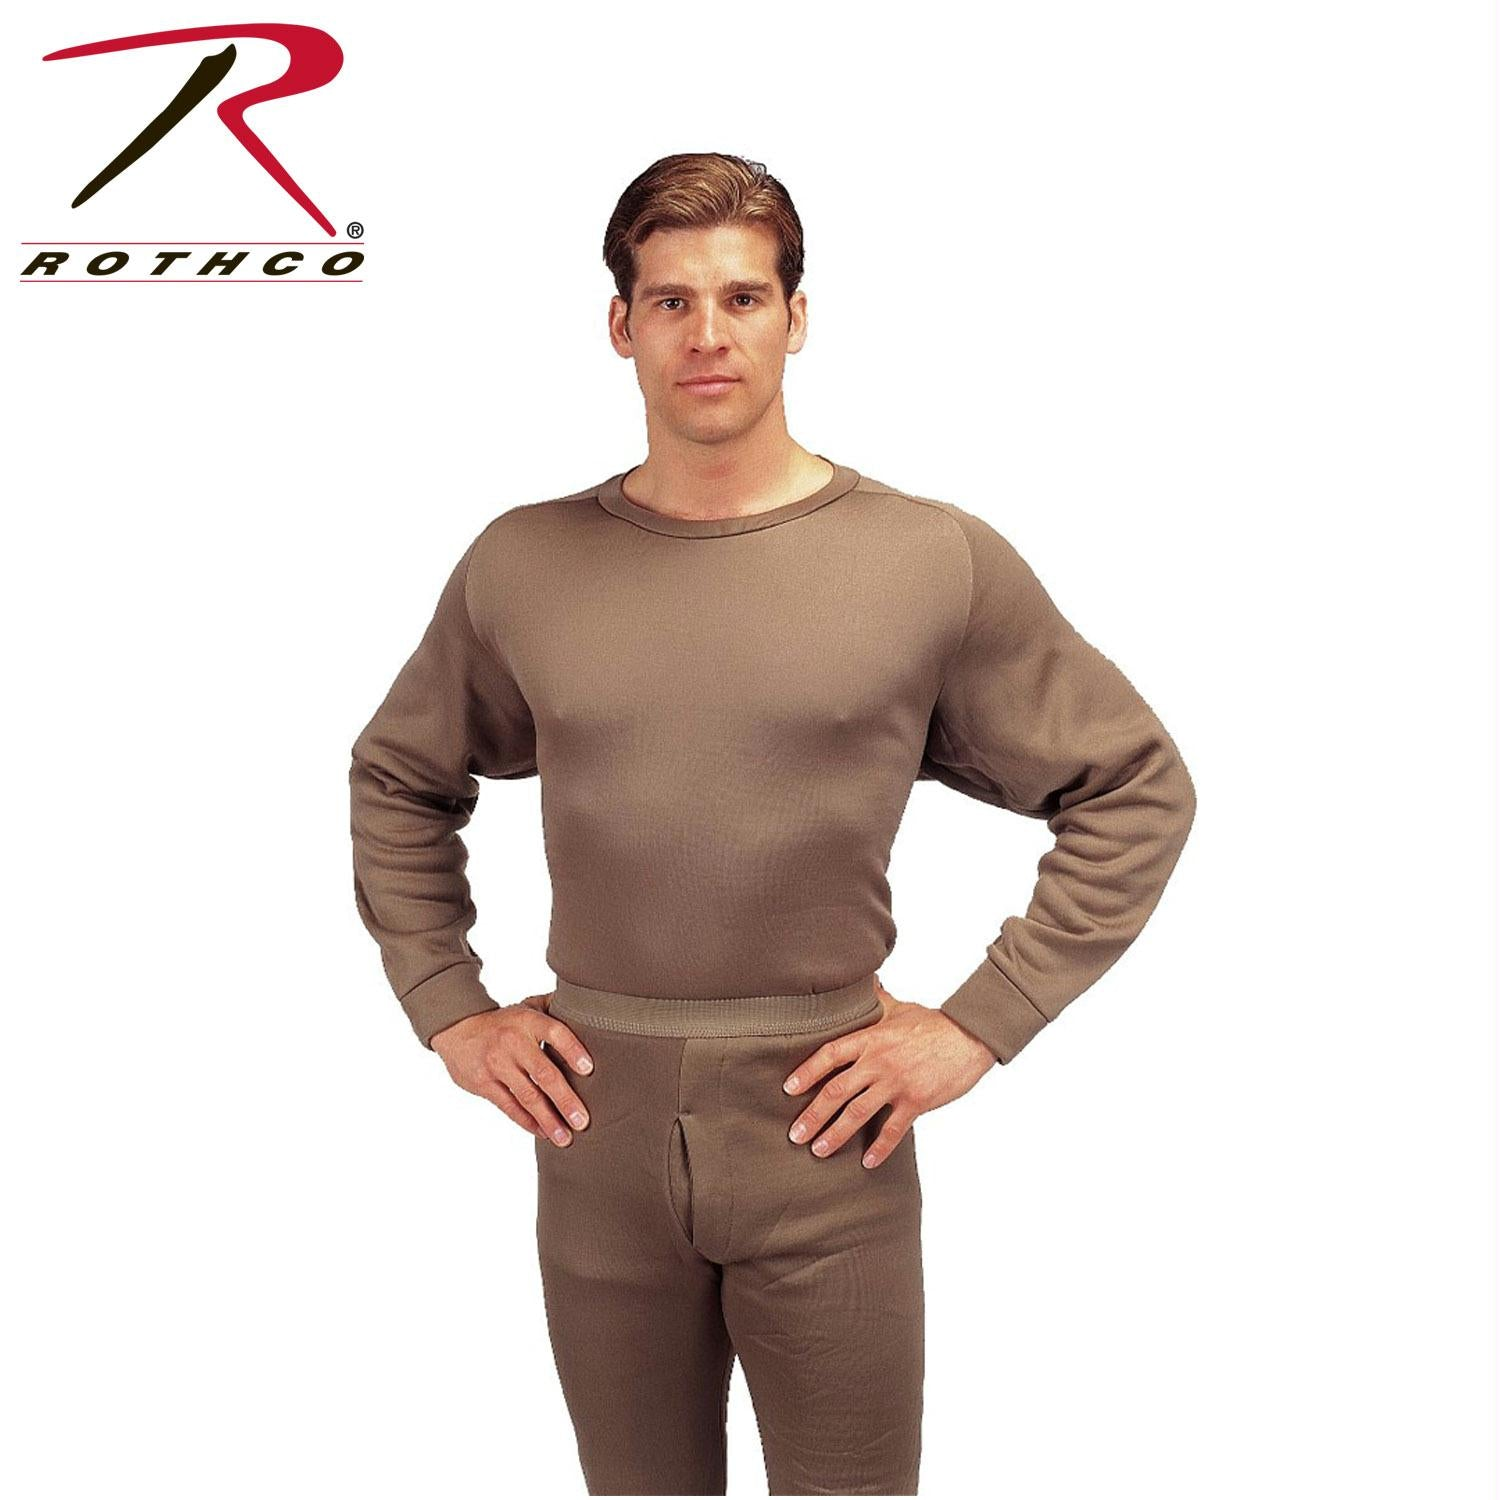 Rothco ECWCS Poly Crew Neck Top - Brown / L